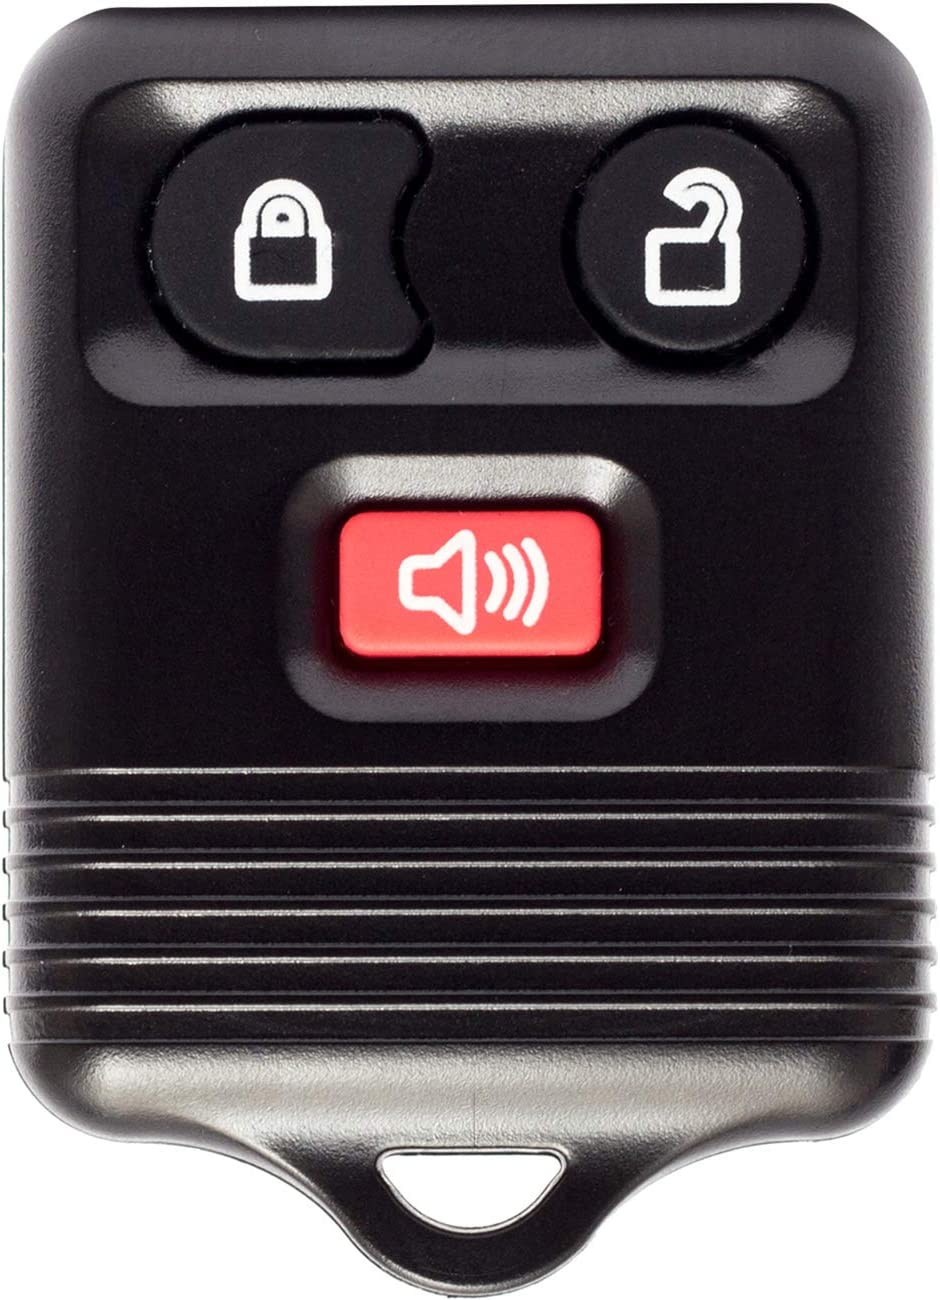 New Style 3 Button Keyless Entry Remote Control Key Fob for Ford Lincoln Mercury